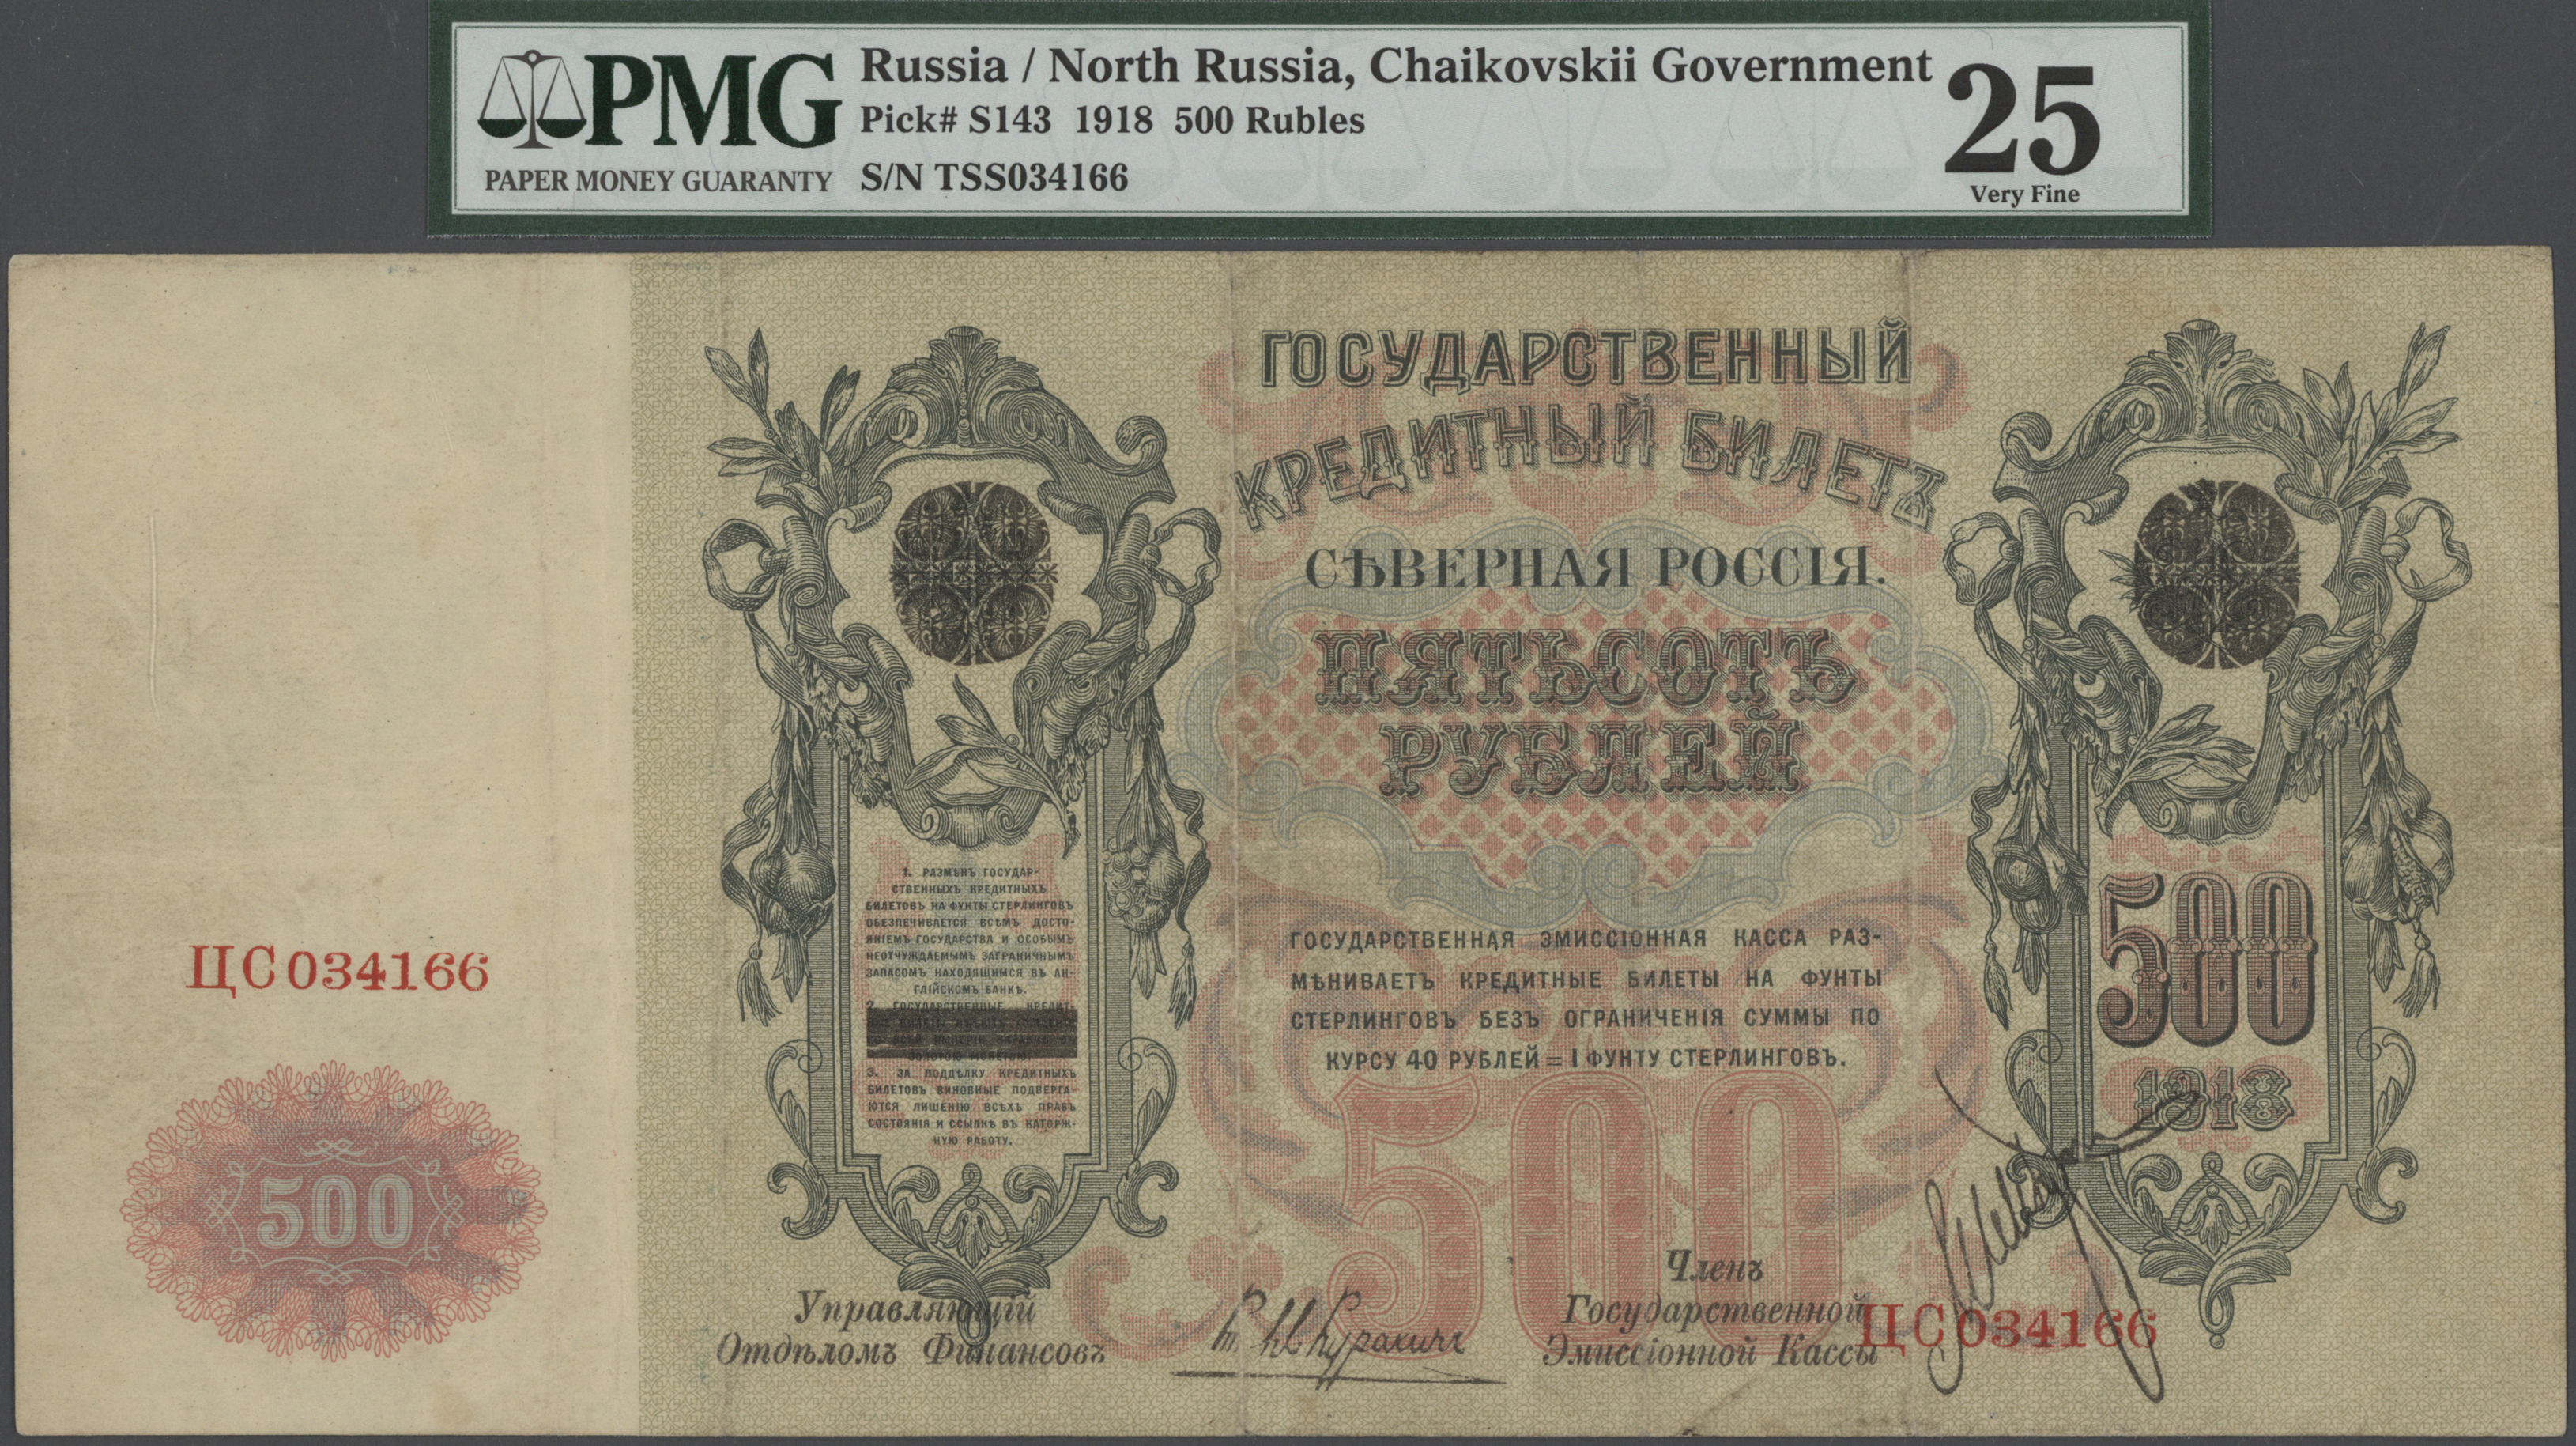 Lot 00659 - Russia / Russland | Banknoten  -  Auktionshaus Christoph Gärtner GmbH & Co. KG Sale #48 The Banknotes